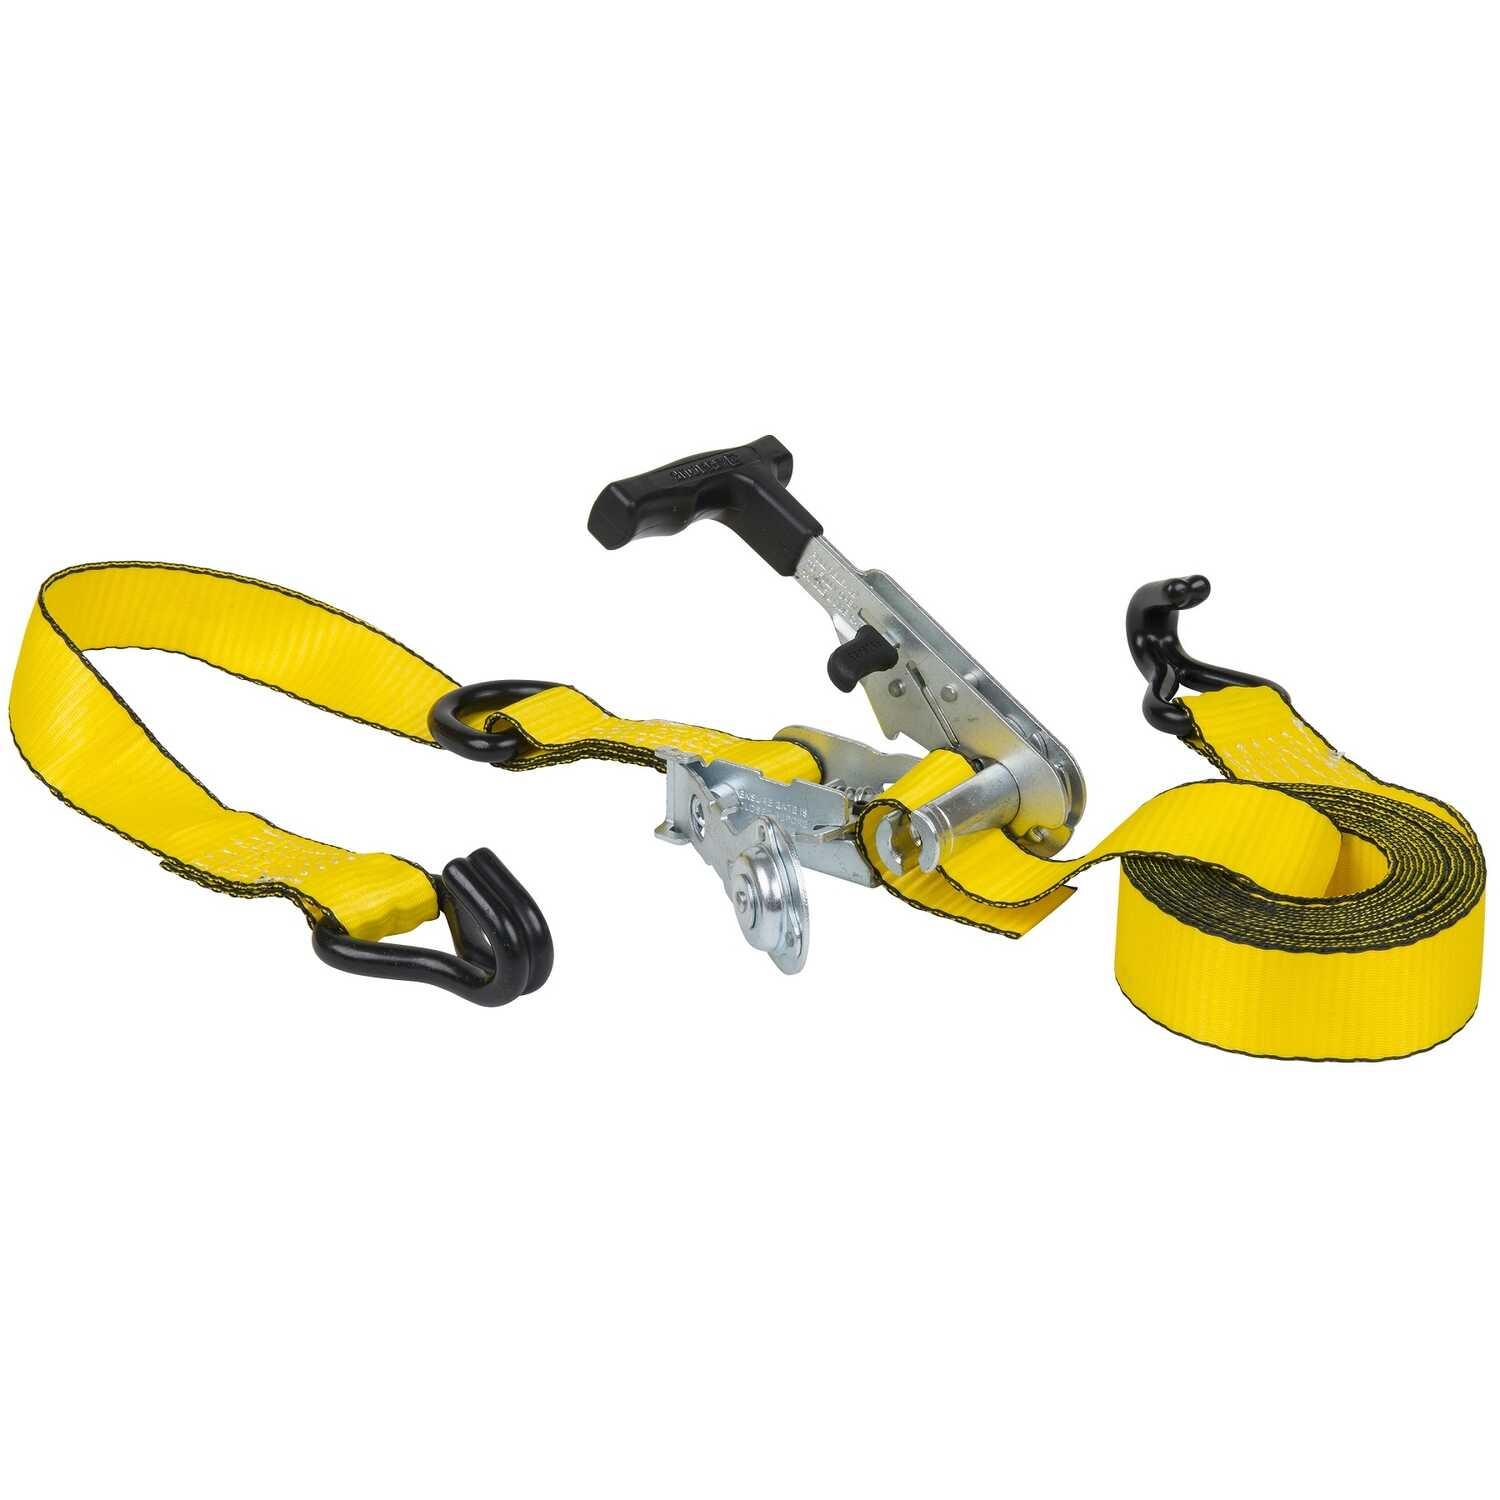 Keeper  Ratchet Armour Series  1-1/4 in. W x 14 ft. L Yellow  Tie Down w/Ratchet  1000 lb. 1 pk